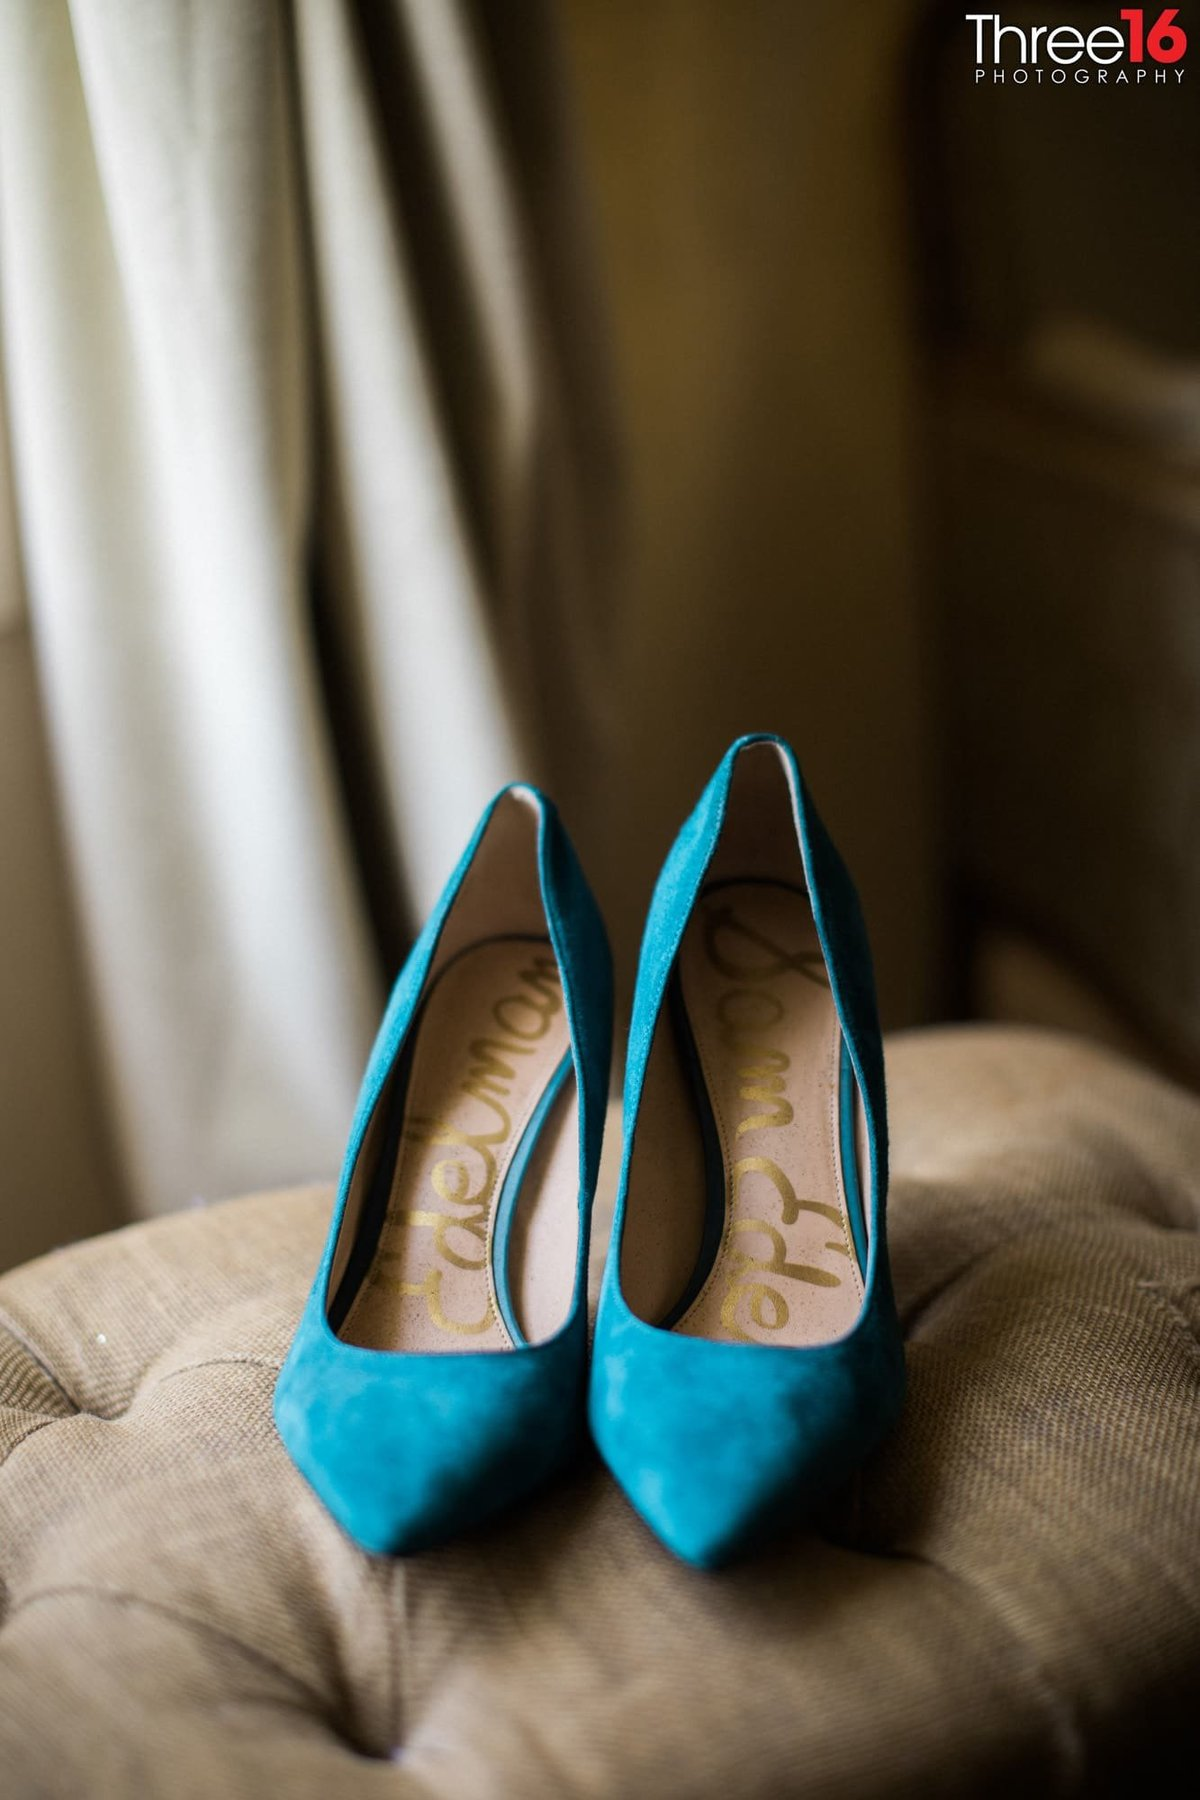 Newhall Mansion Piru California Los Angeles  Wedding Venue Shoe Photography